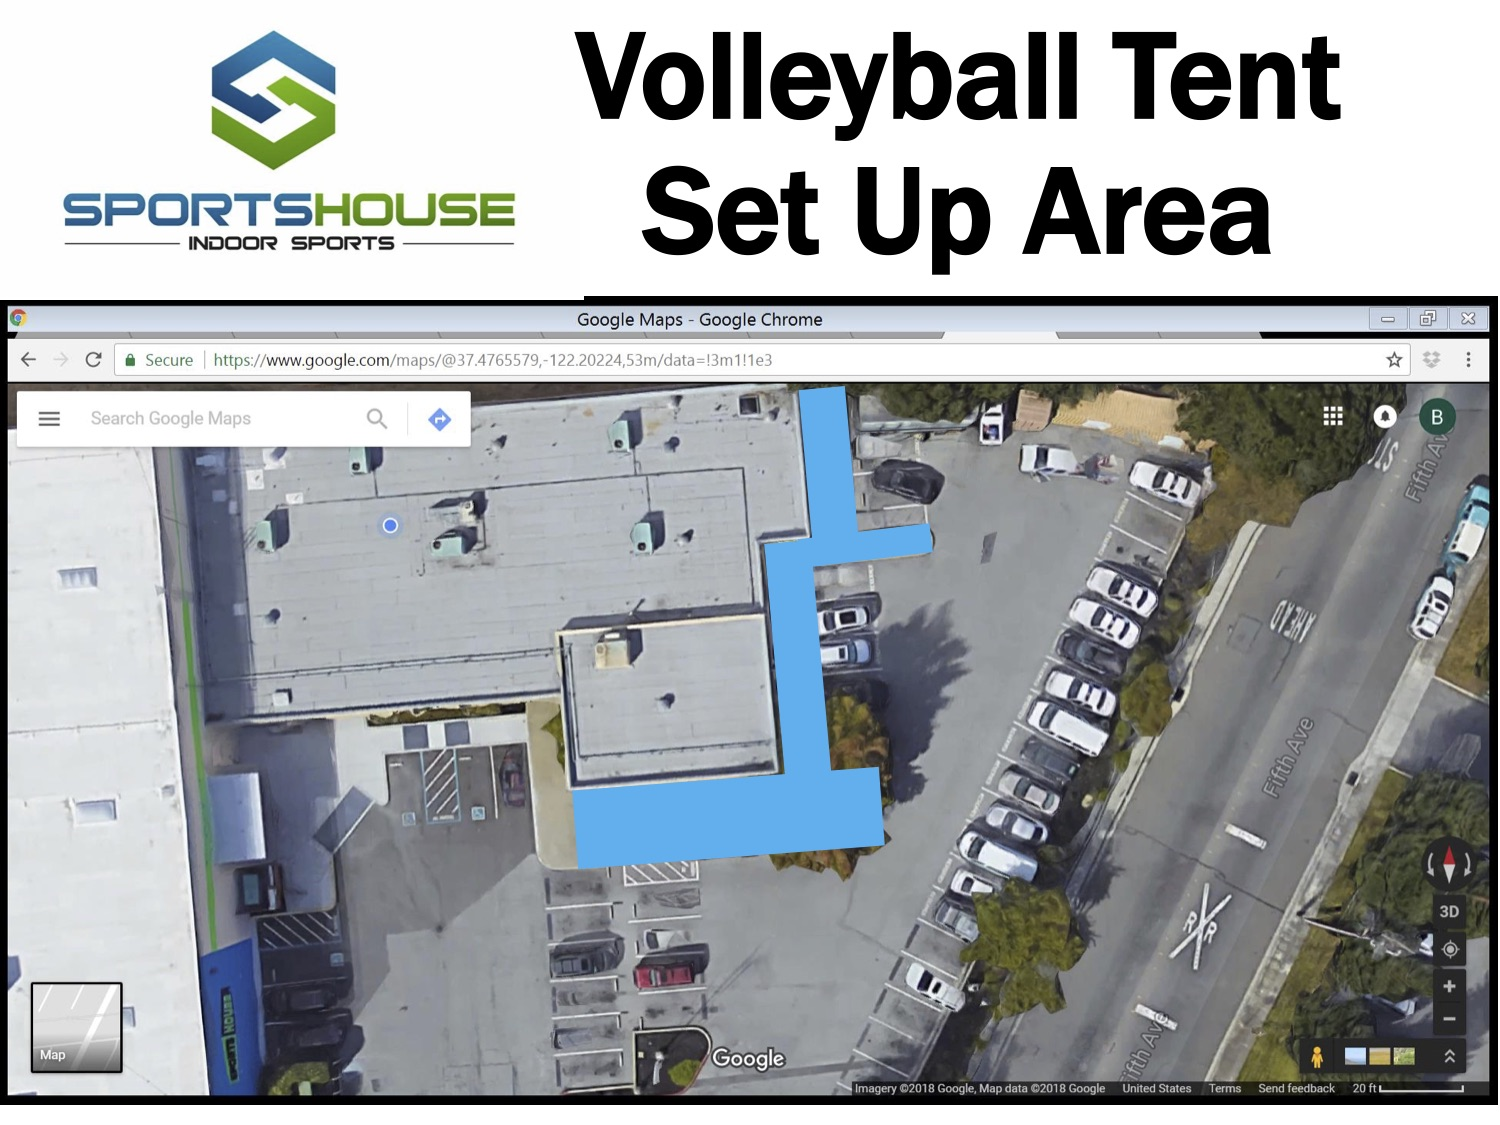 Volleyball Tent Set Up Area.jpeg